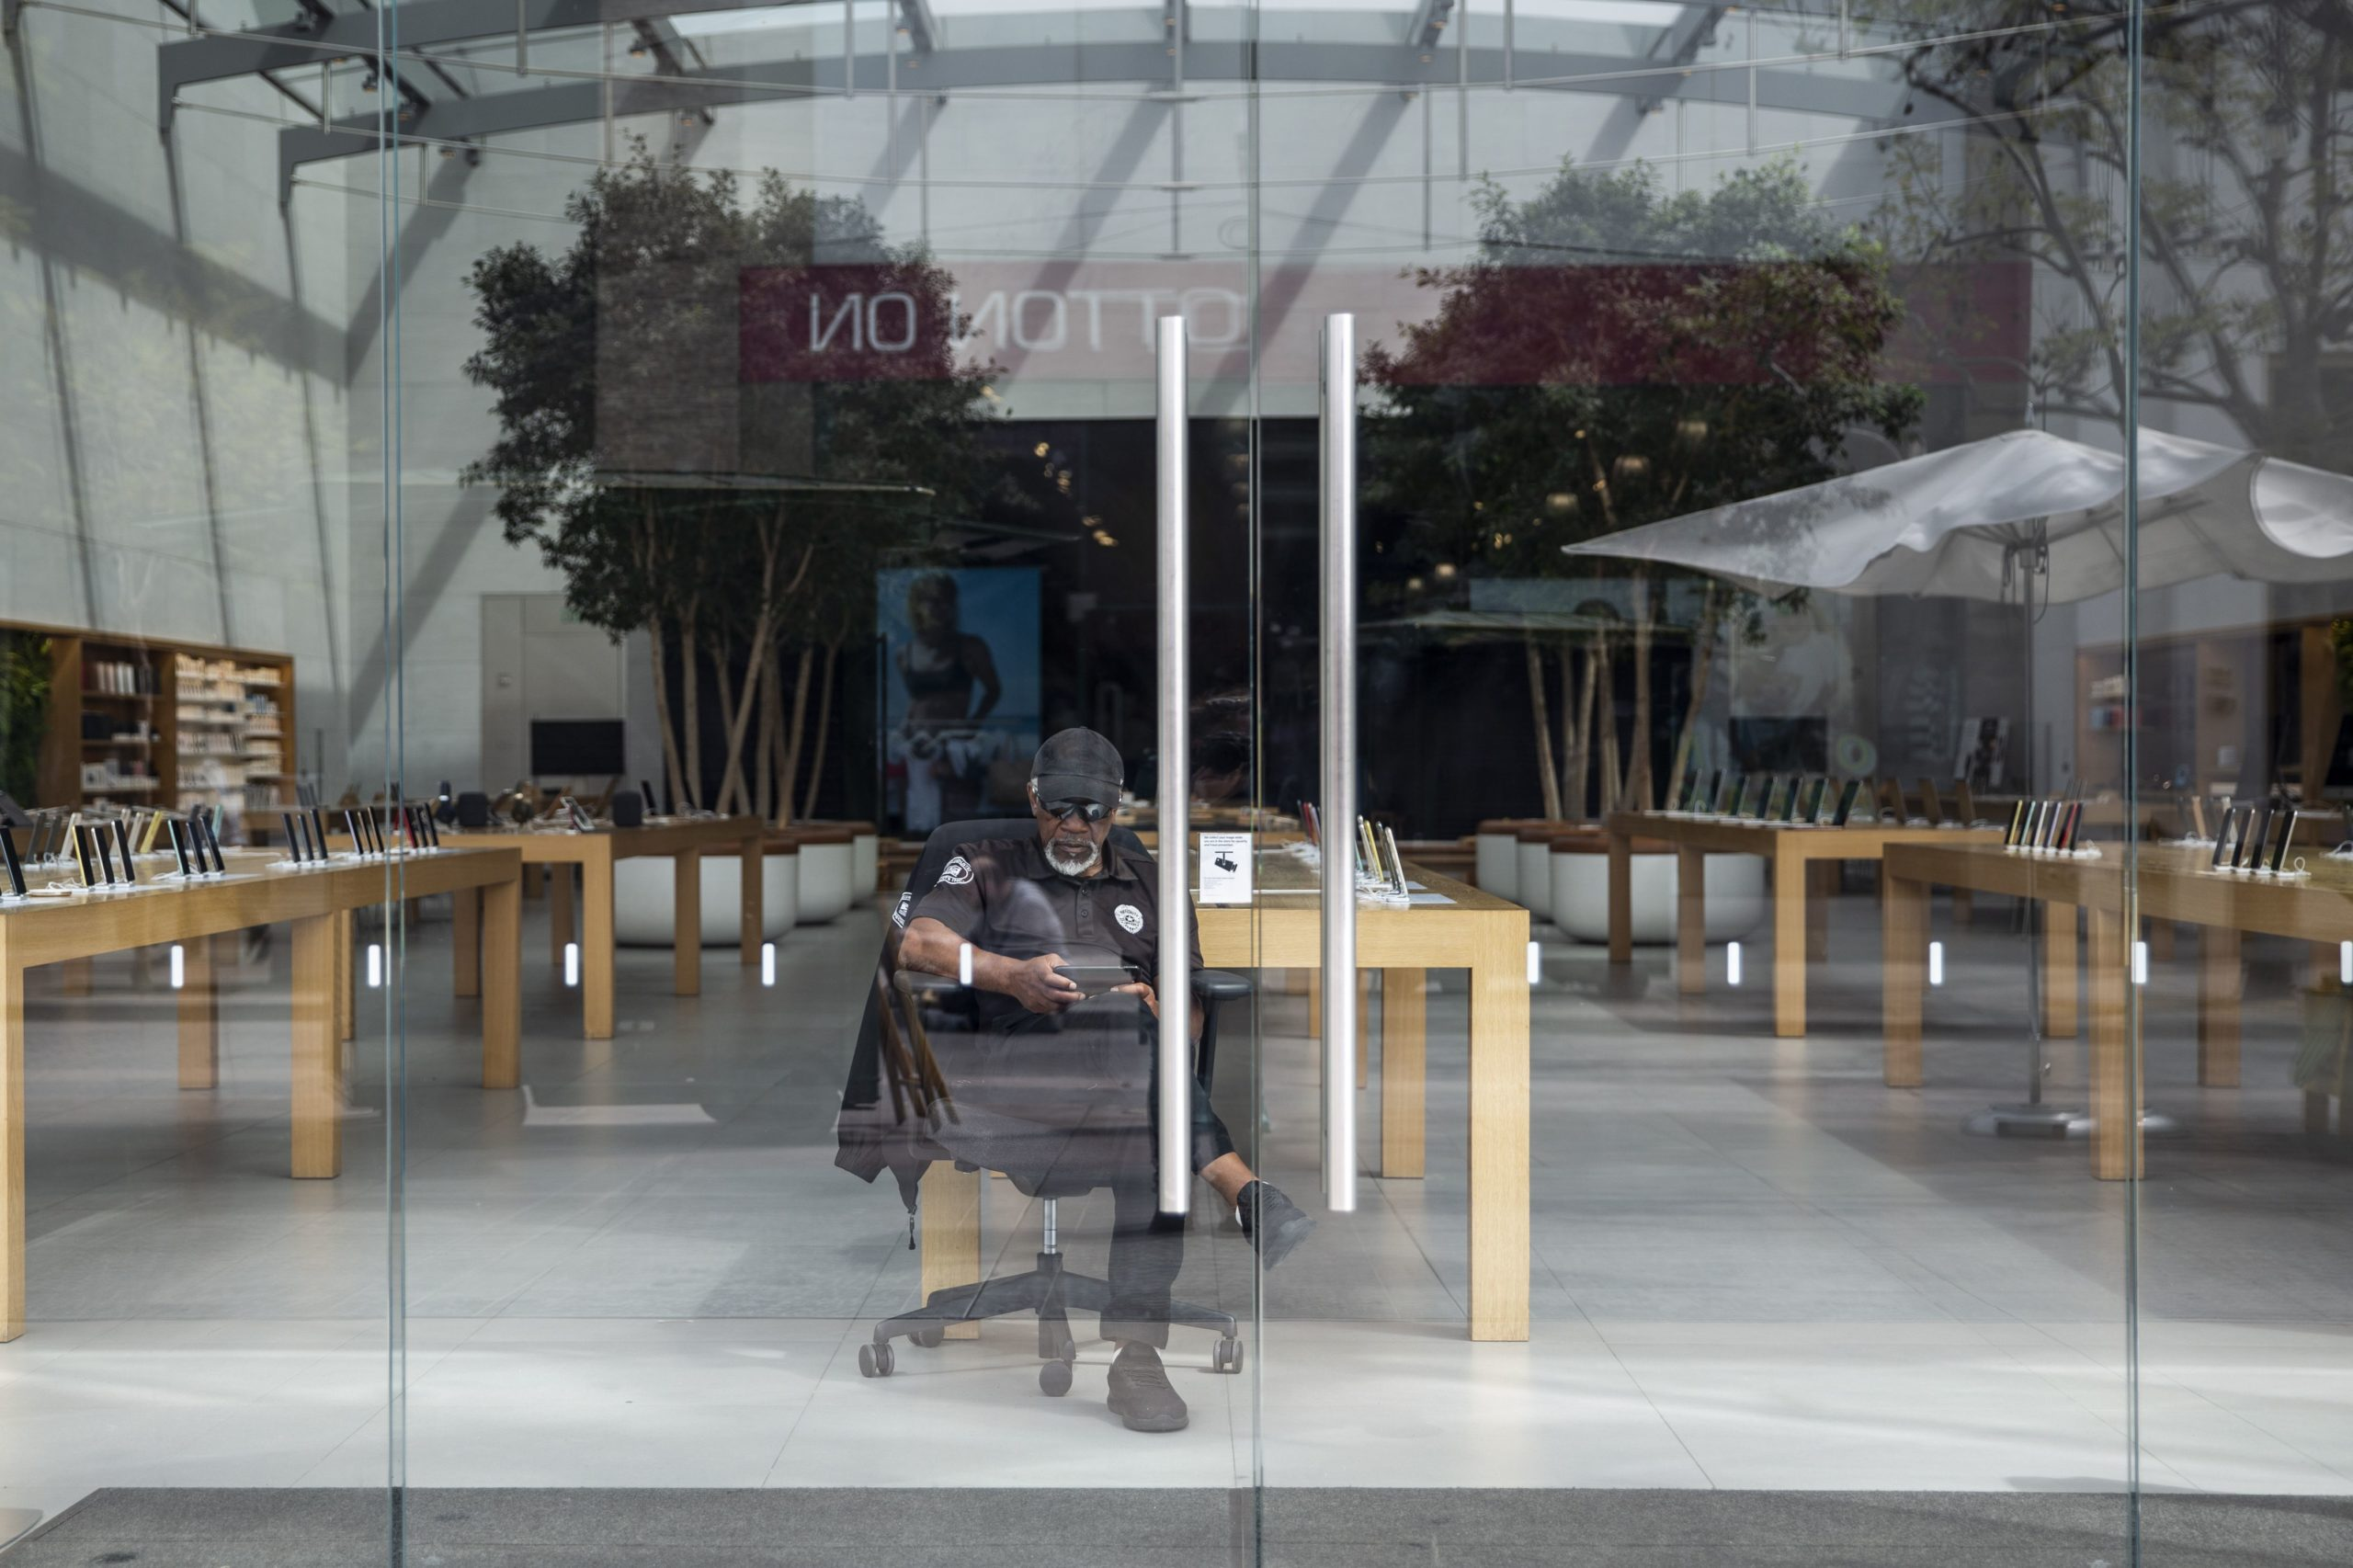 Apple ordered to pay workers for time lost during security searches